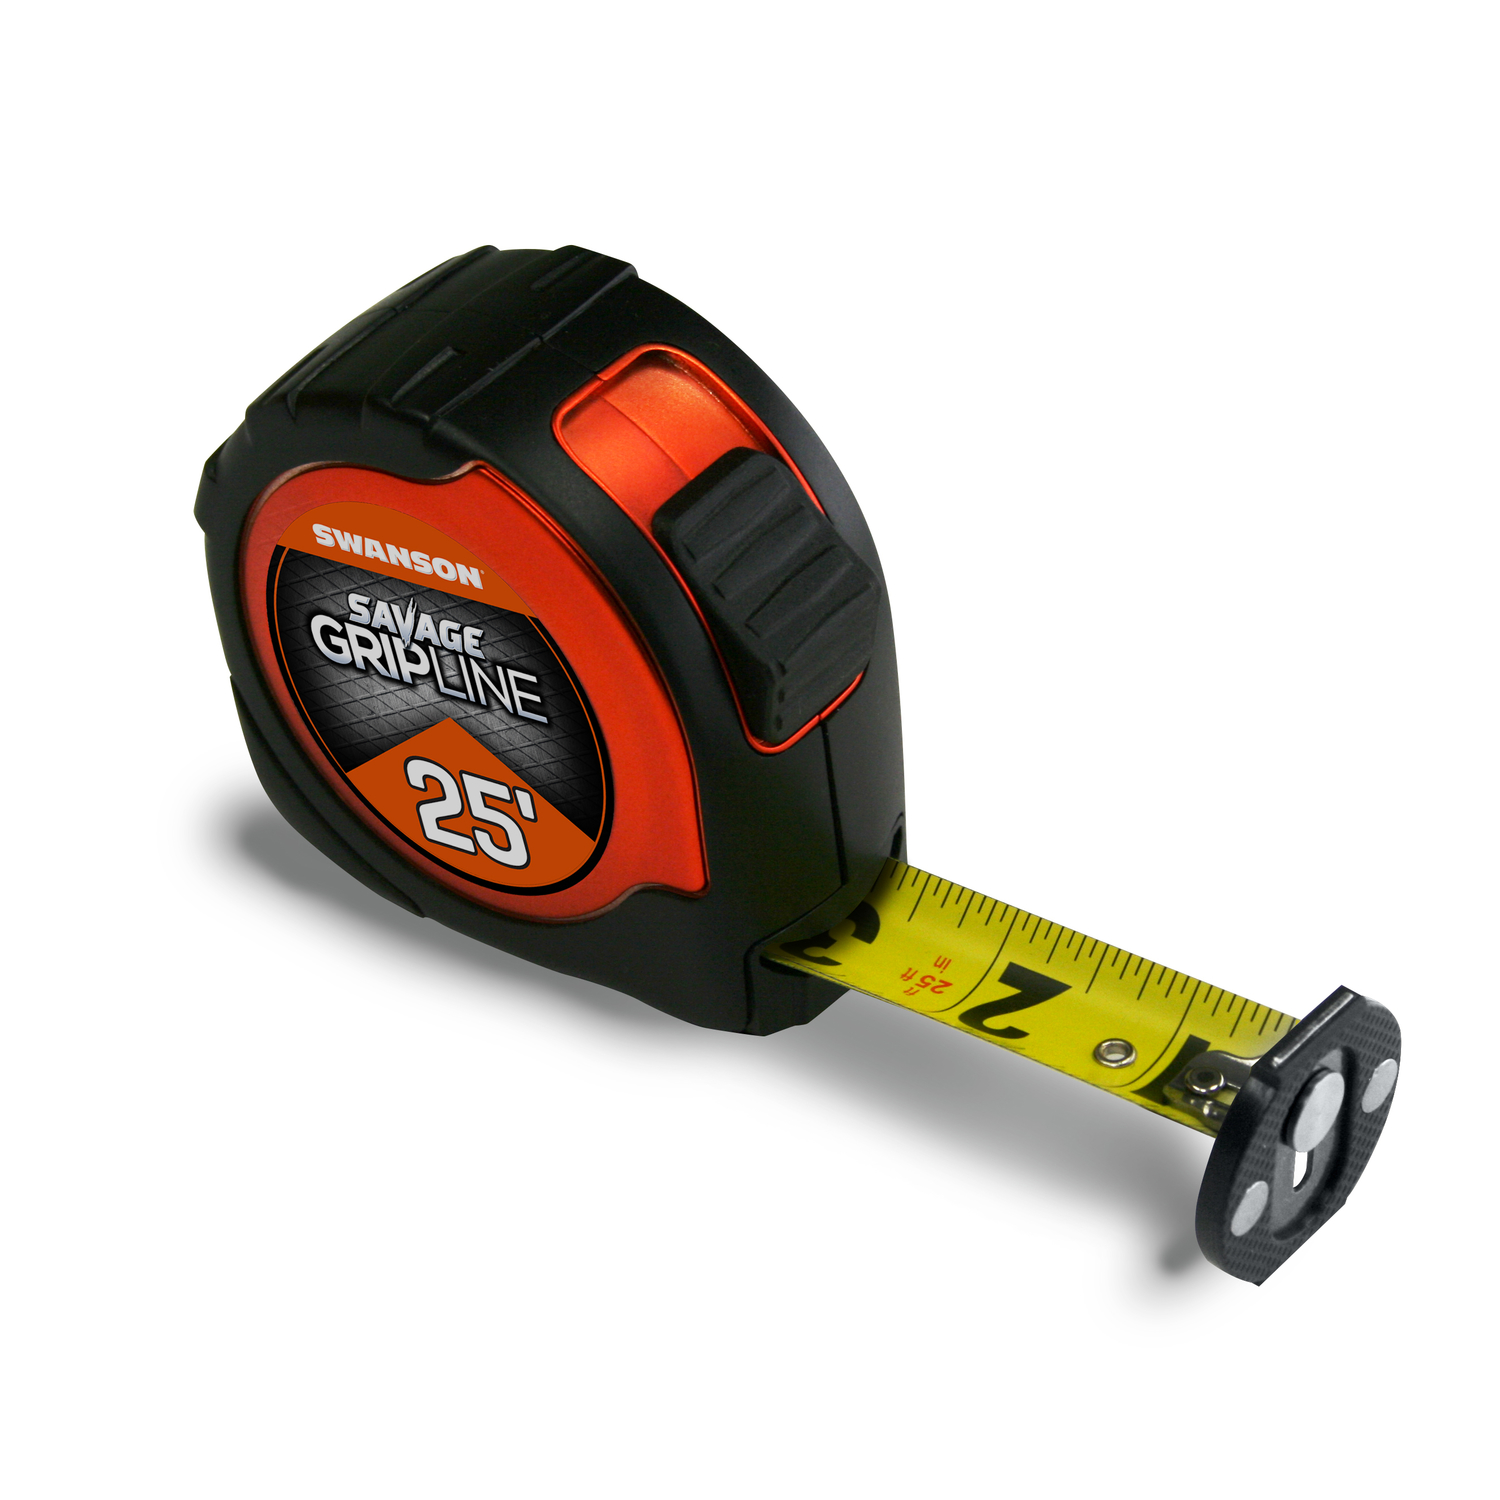 Swanson  Savage Grip Line  25 in. L x 1-1/16 in. W Tape Measure  1 pk Black  Aluminum with Anodized